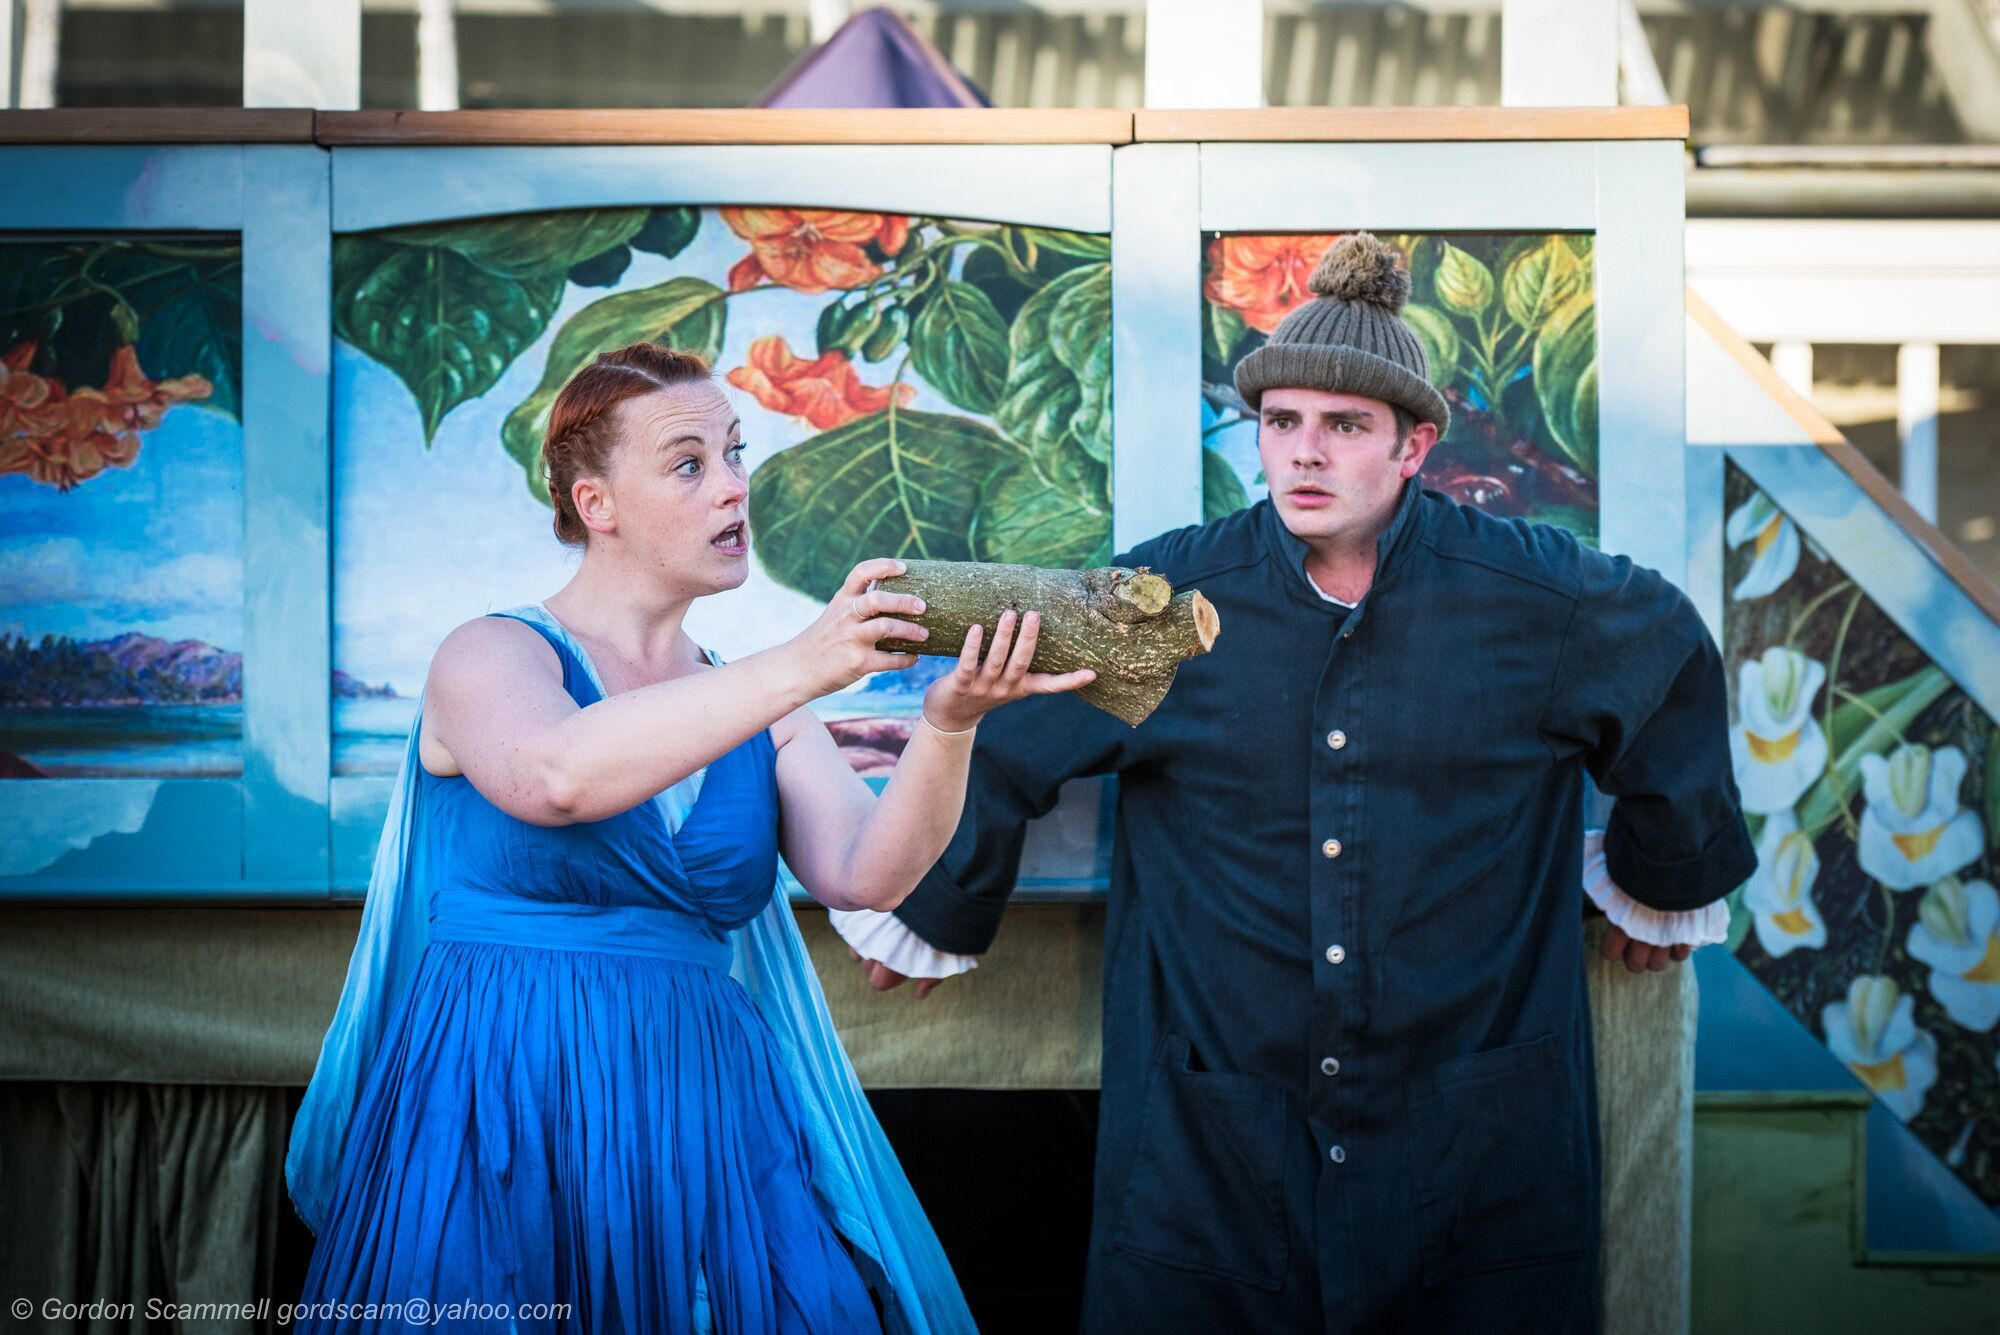 Chepstow Castle will have Illyria perform Shakespeare's The Tempest